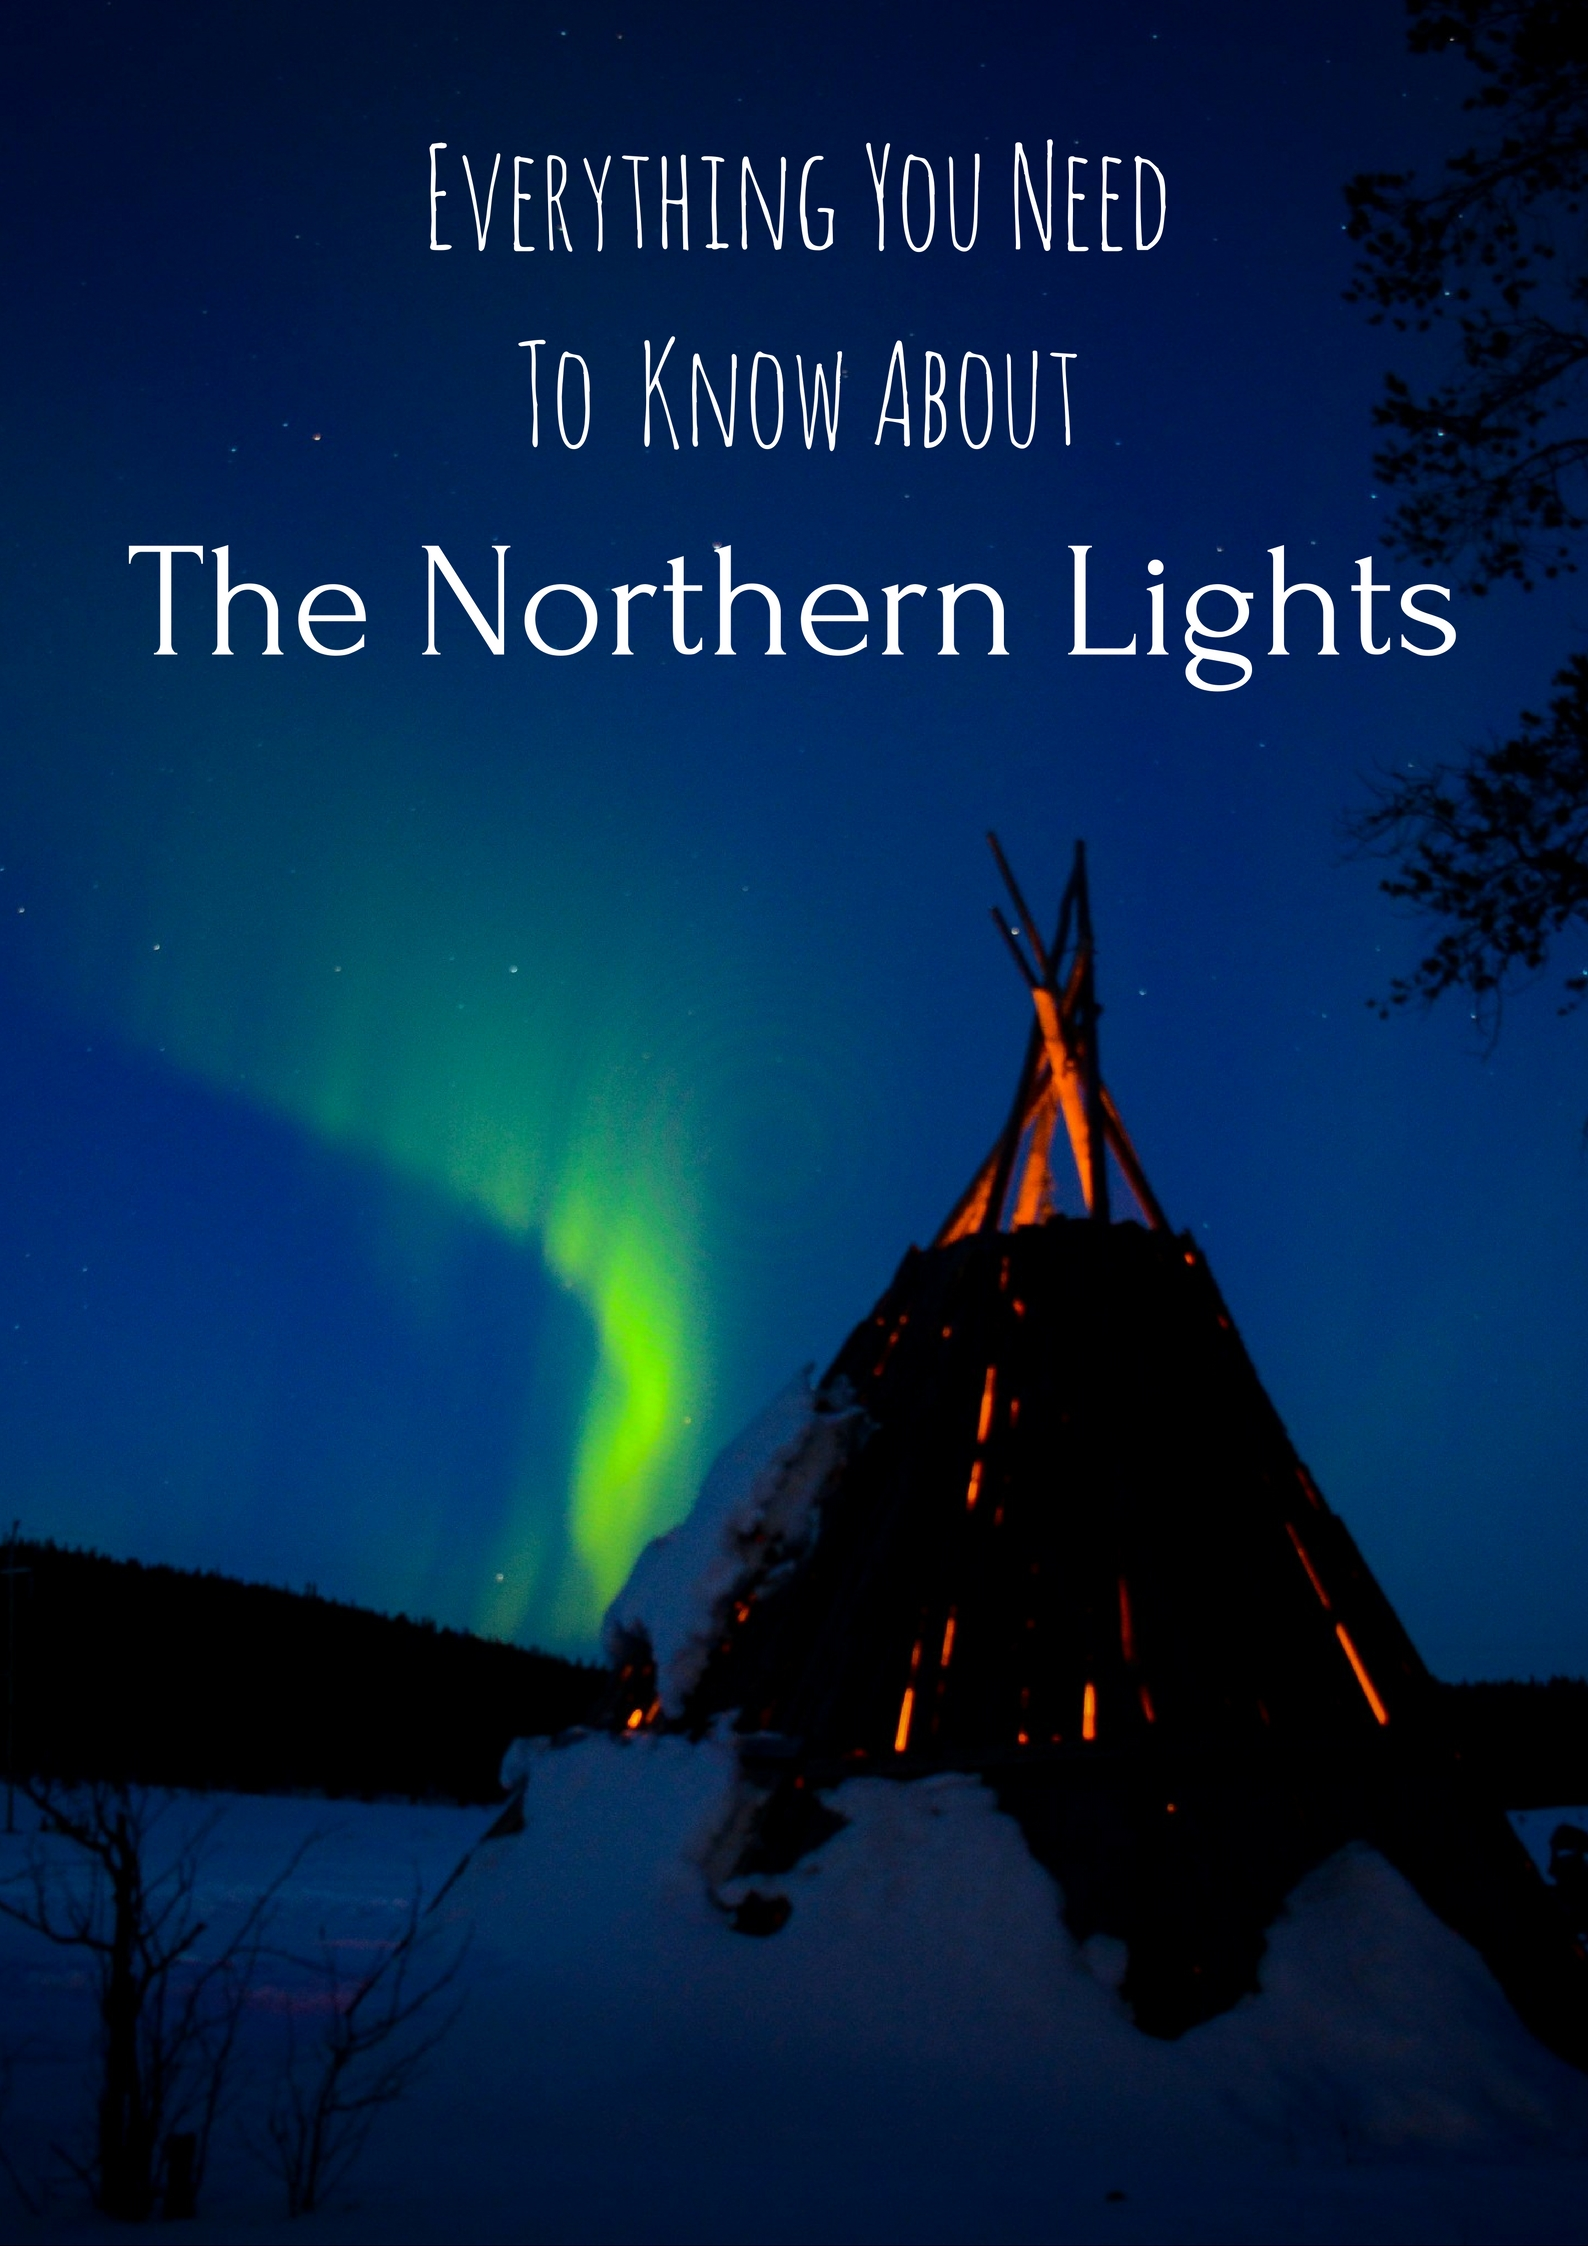 Everything You Need To Know About Seeing The Northern Lights